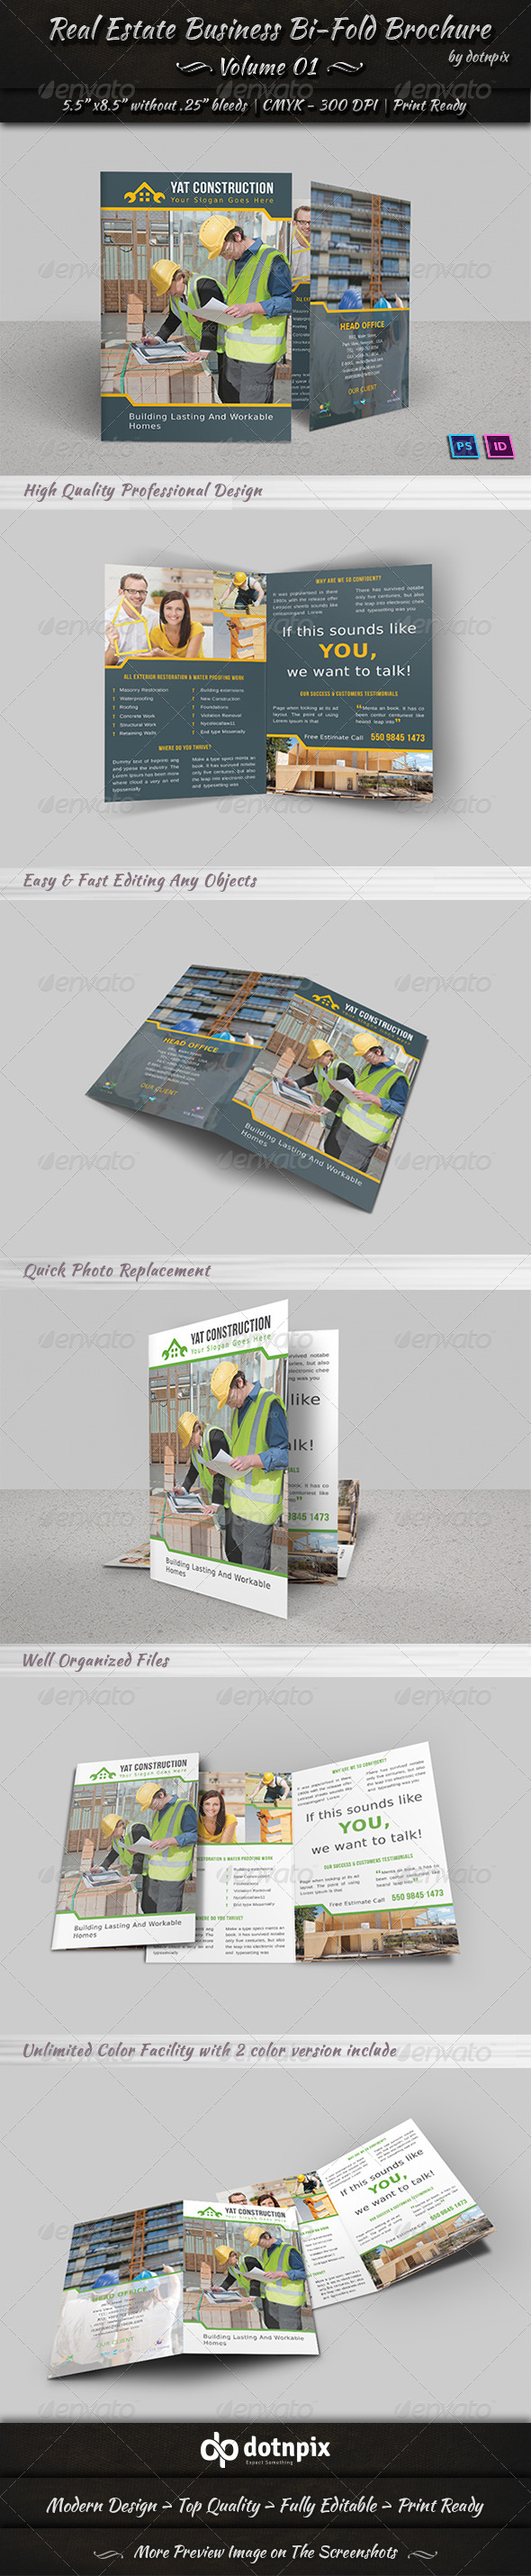 Real Estate Business Bi-Fold Brochure | Volume 1 - Corporate Brochures